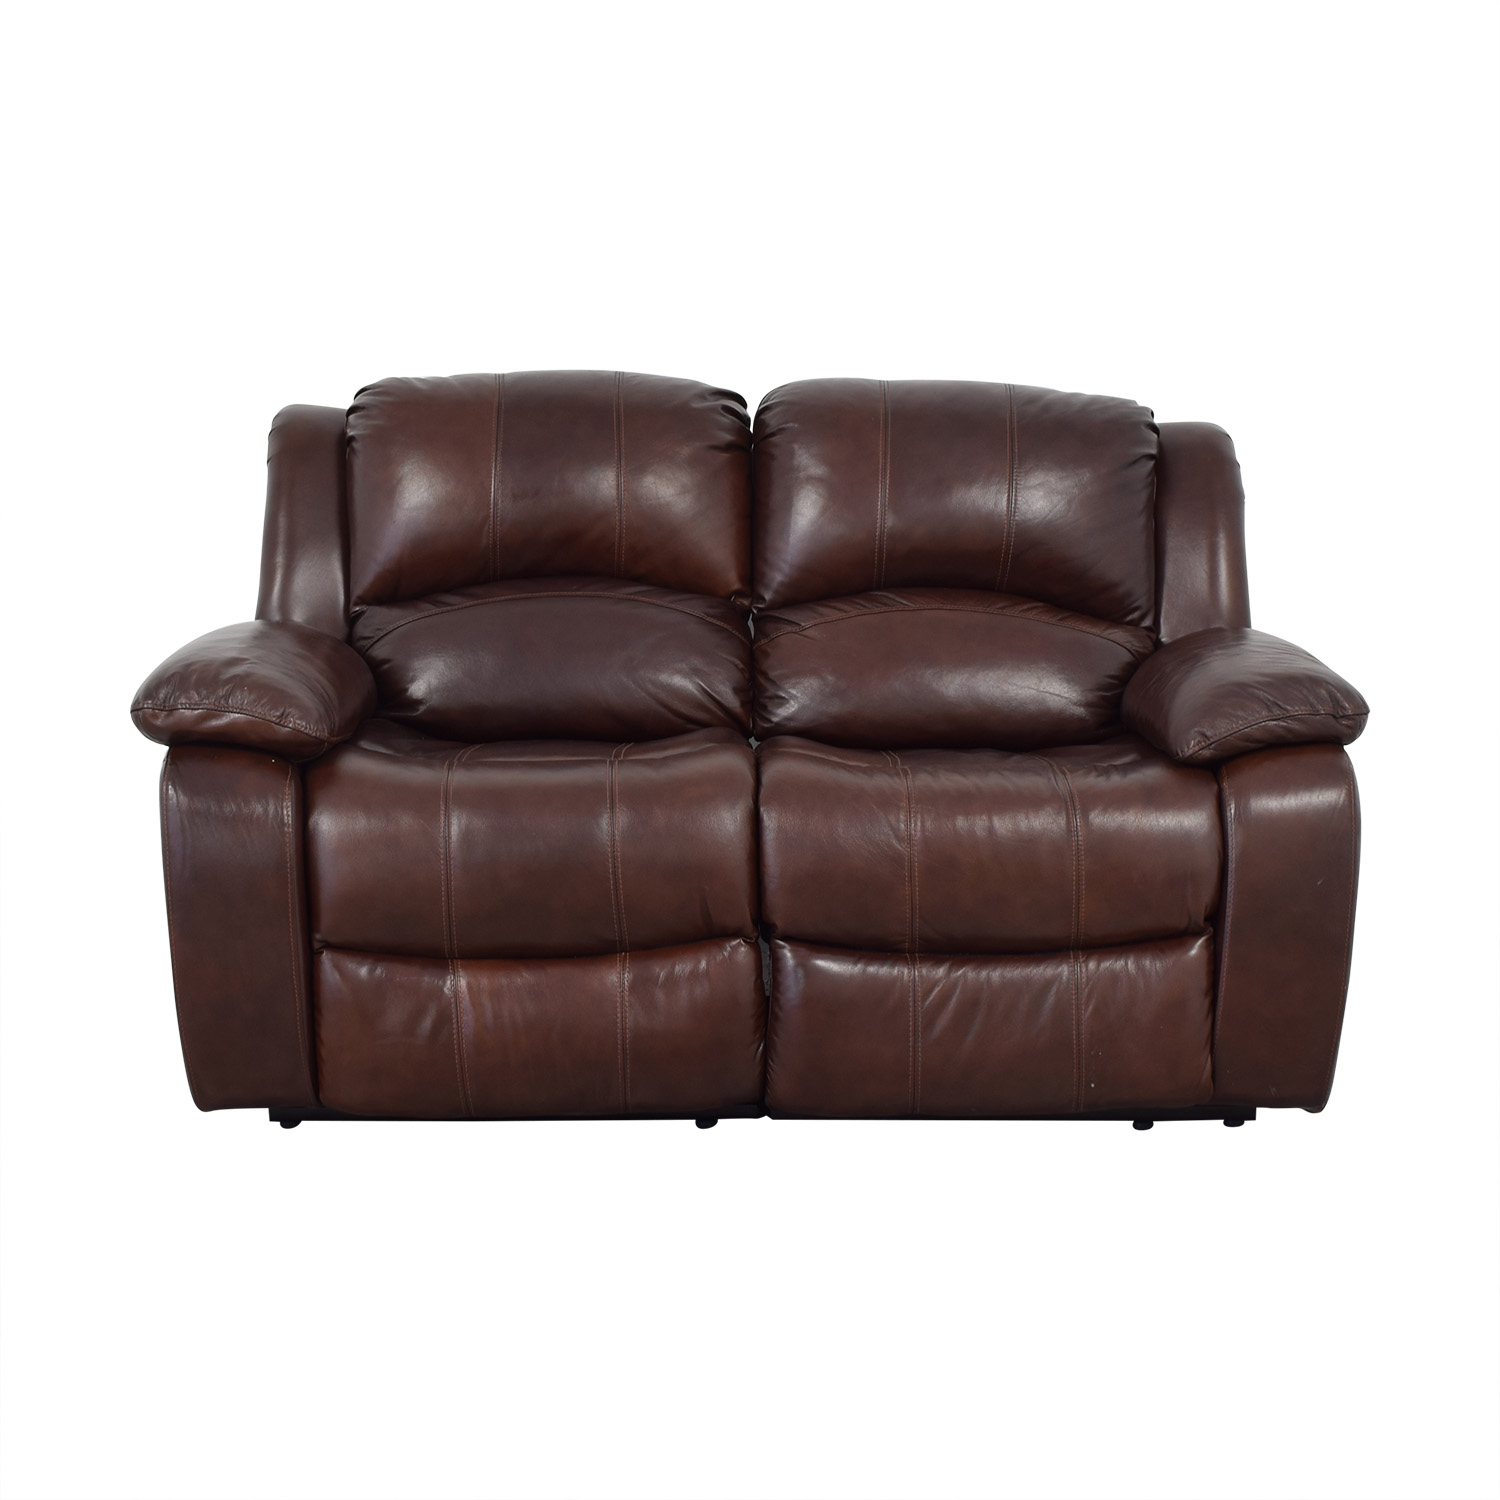 buy Raymour & Flanigan Dual Reclining Loveseat Raymour & Flanigan